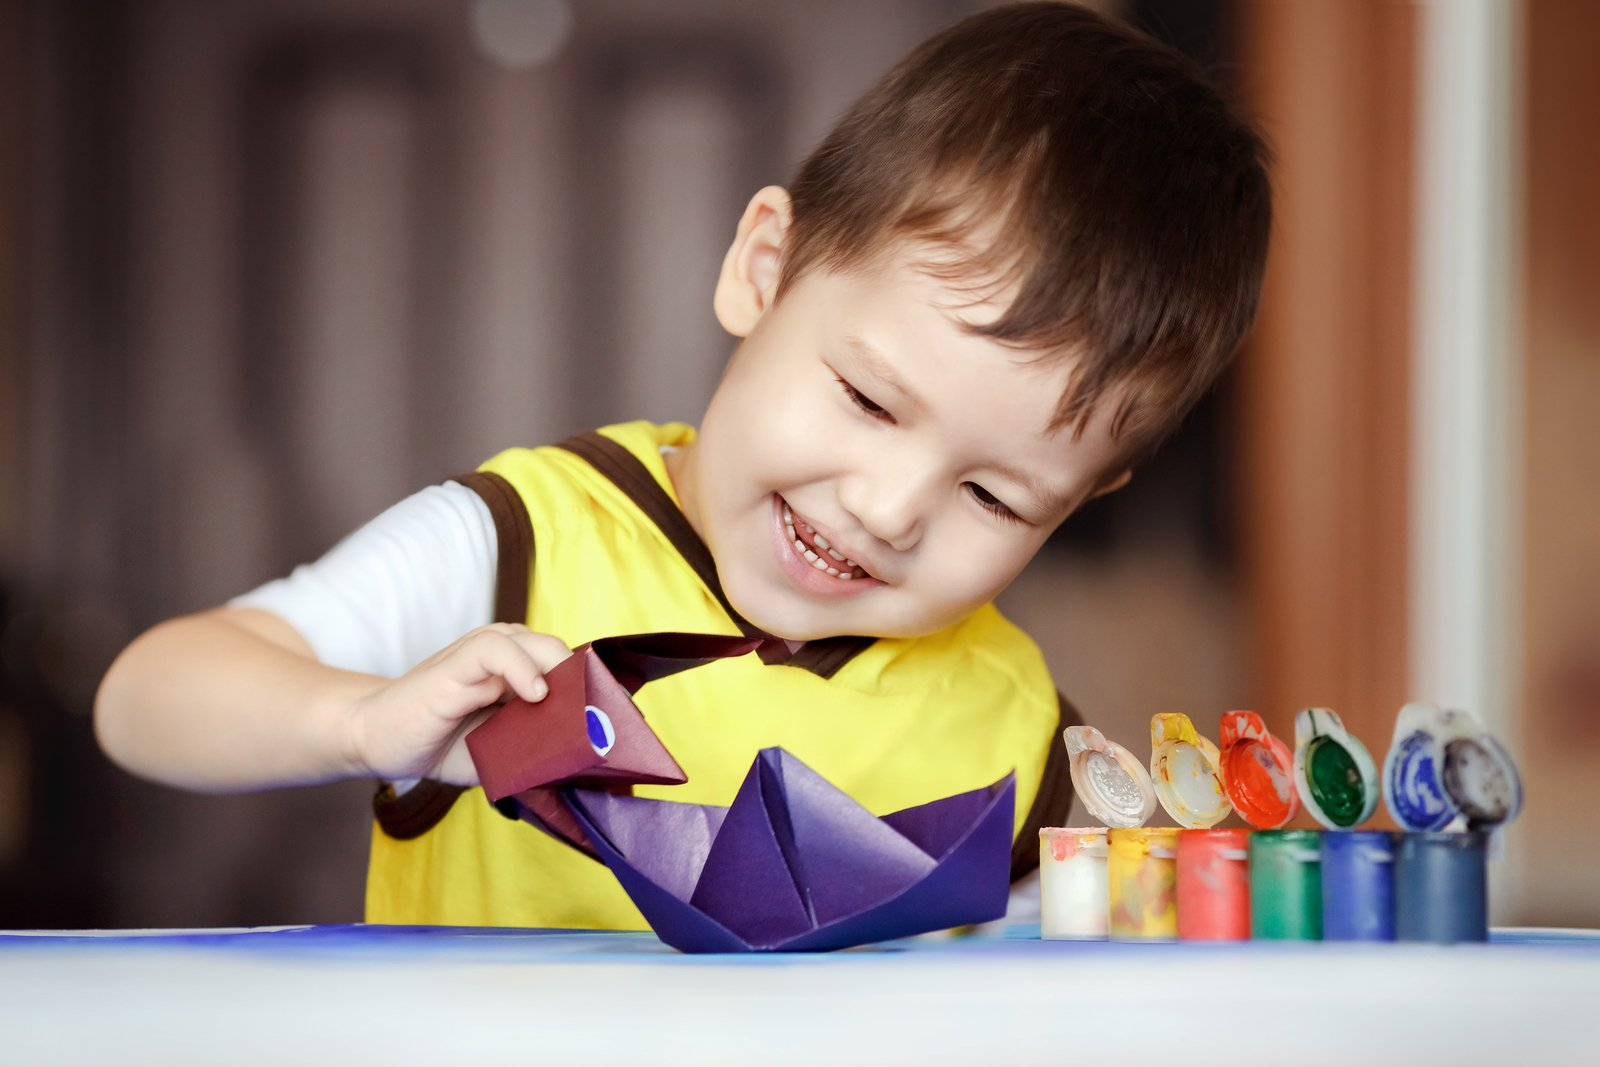 boy smiling while doing origami